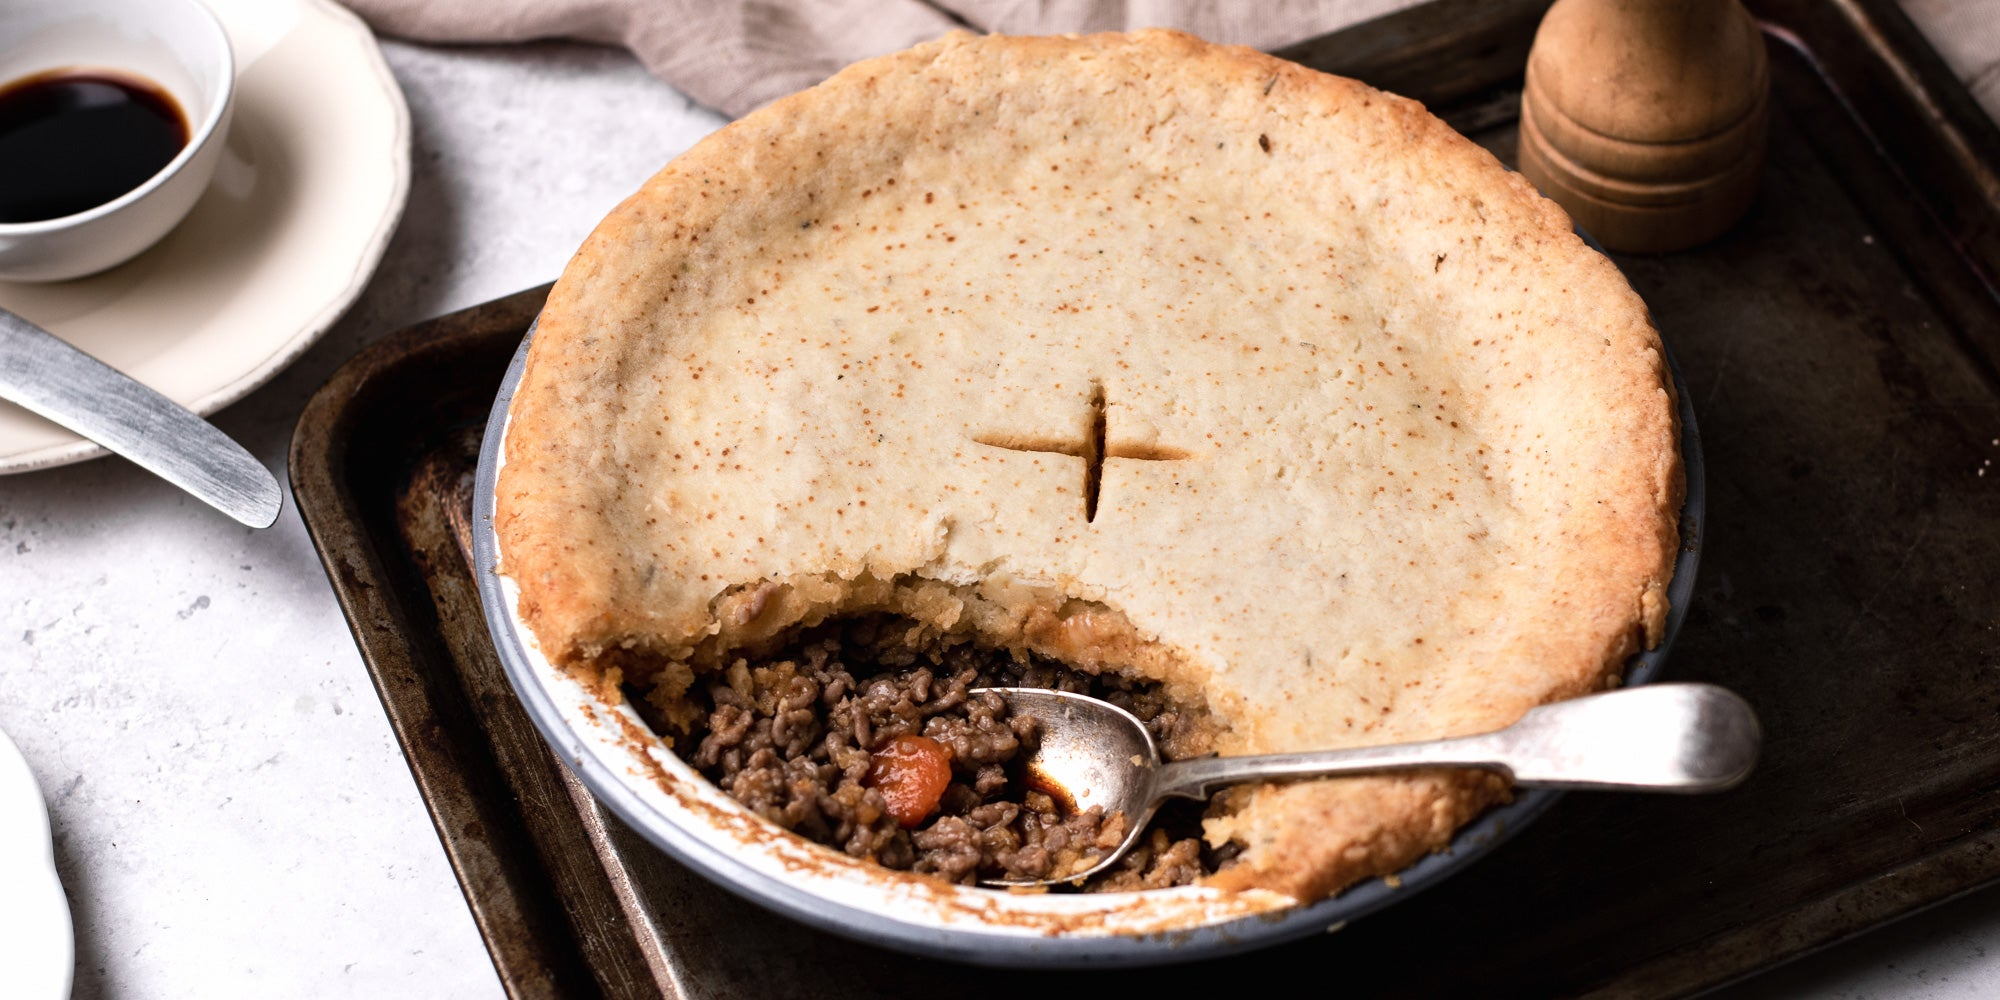 Close up of Suet Crusted Beef & Onion Pie, with a spoon inside the filling. Served on a baking tray